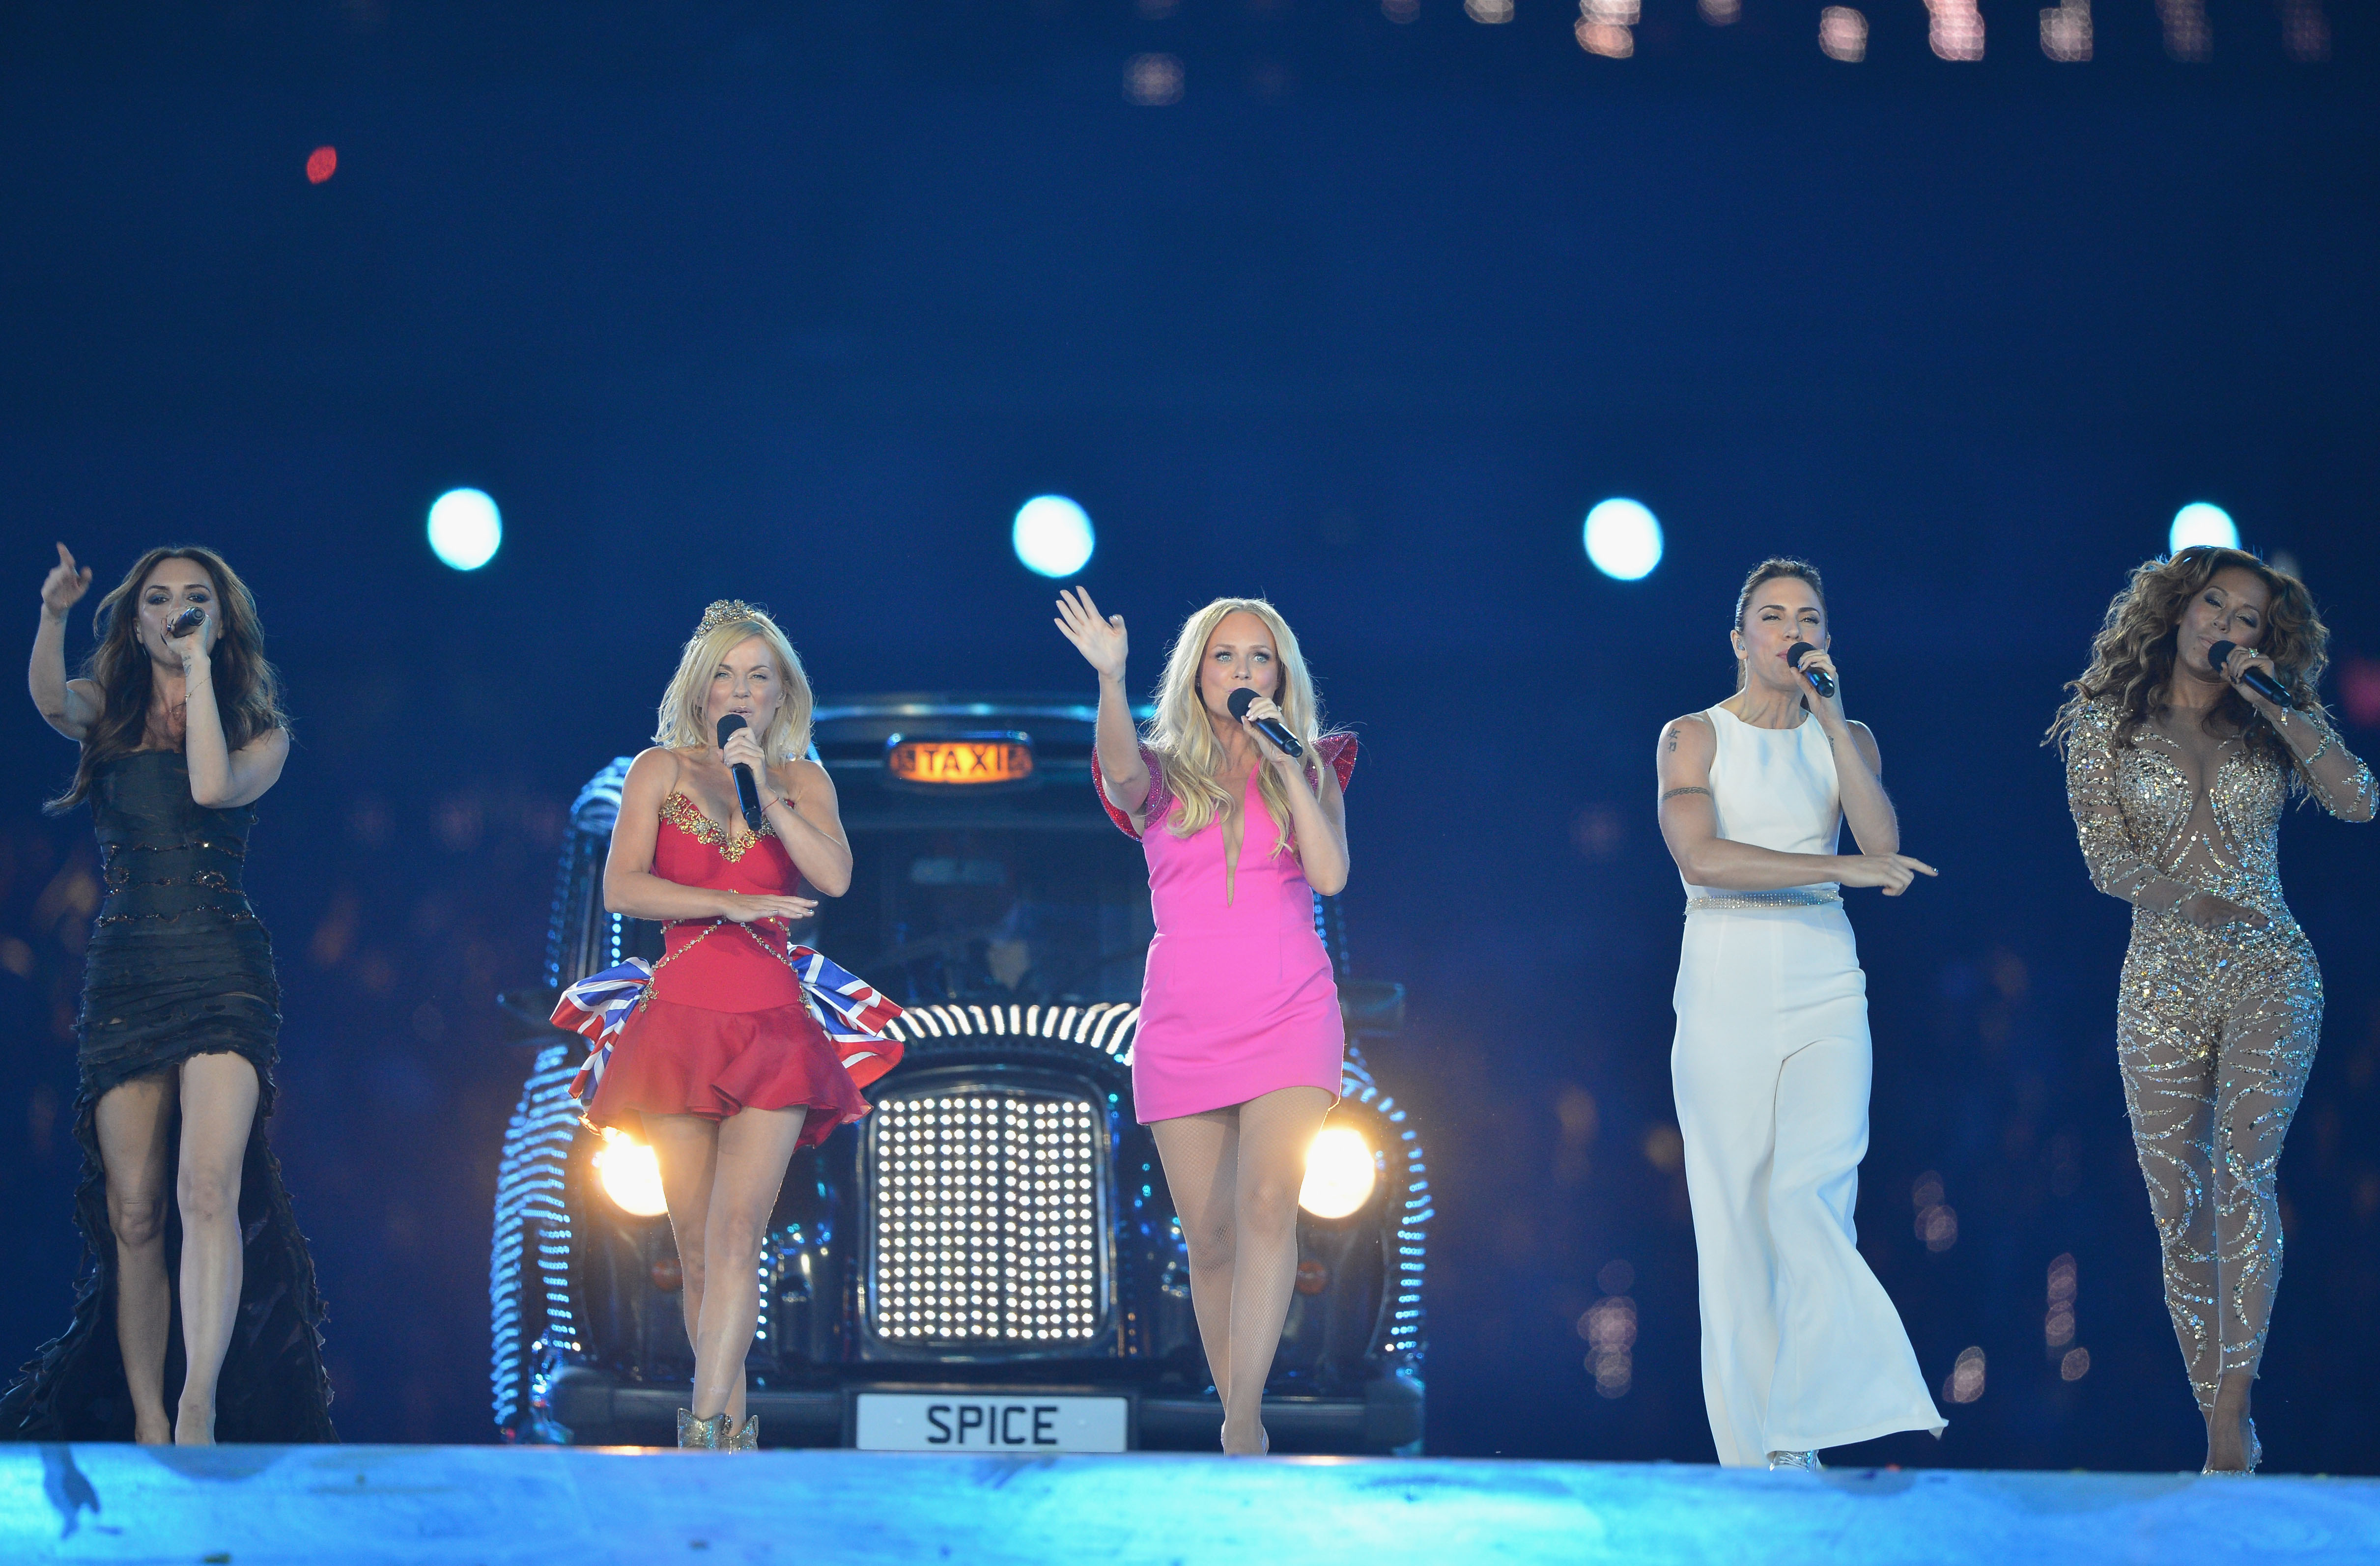 The Spice Girls Spice Up The Closing Ceremony